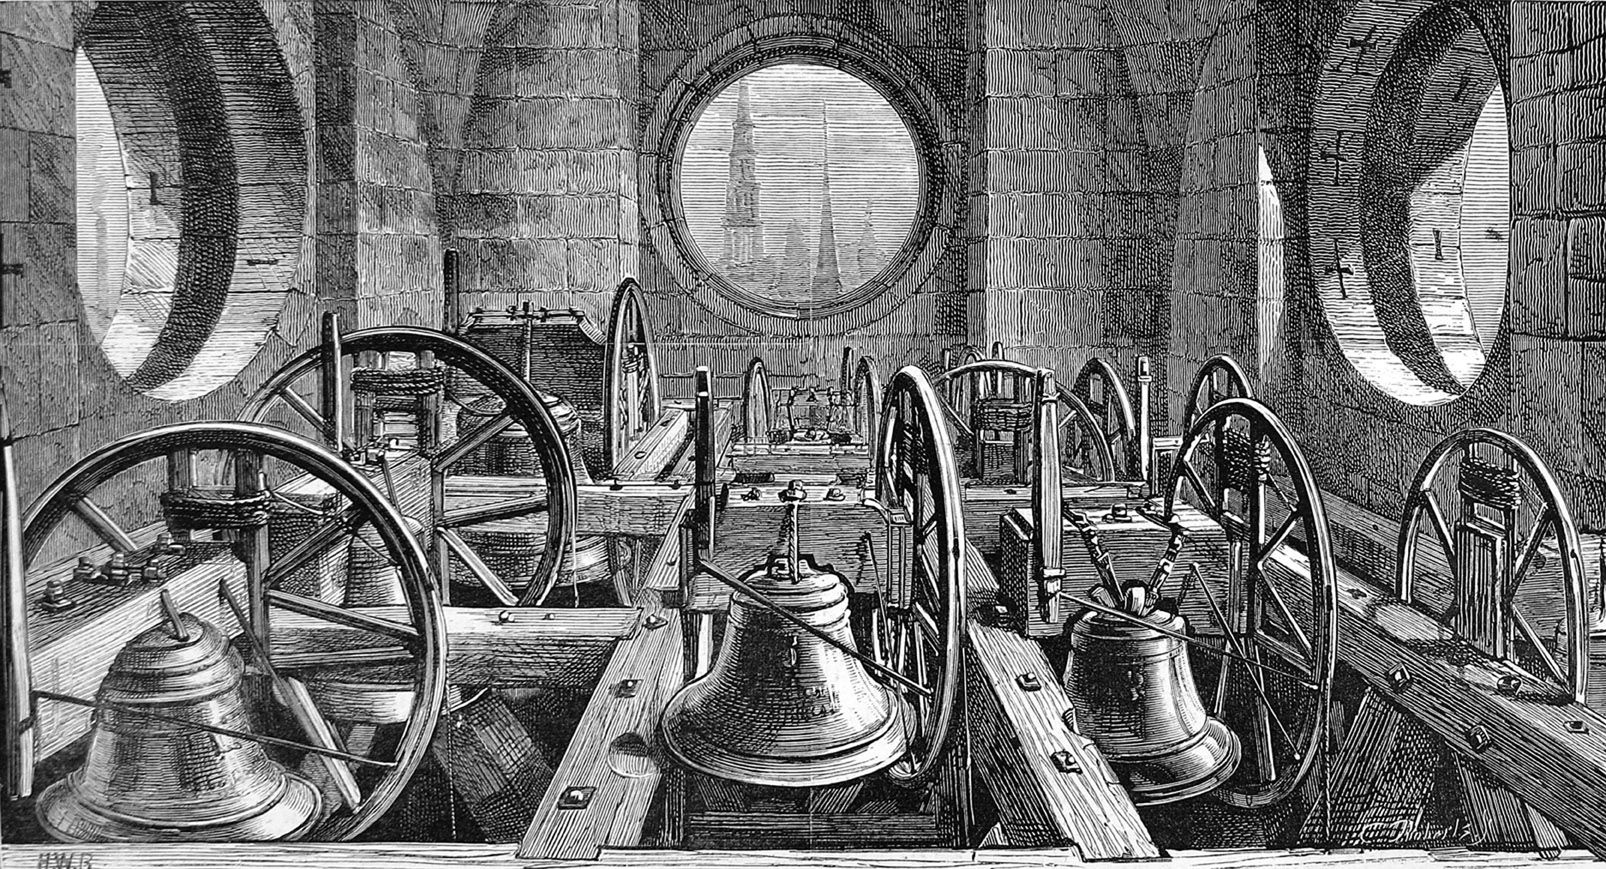 Engraving showing a view of the peal of bells in St.Paul's Cathedral, London, 1878. Date: 12 October 1878